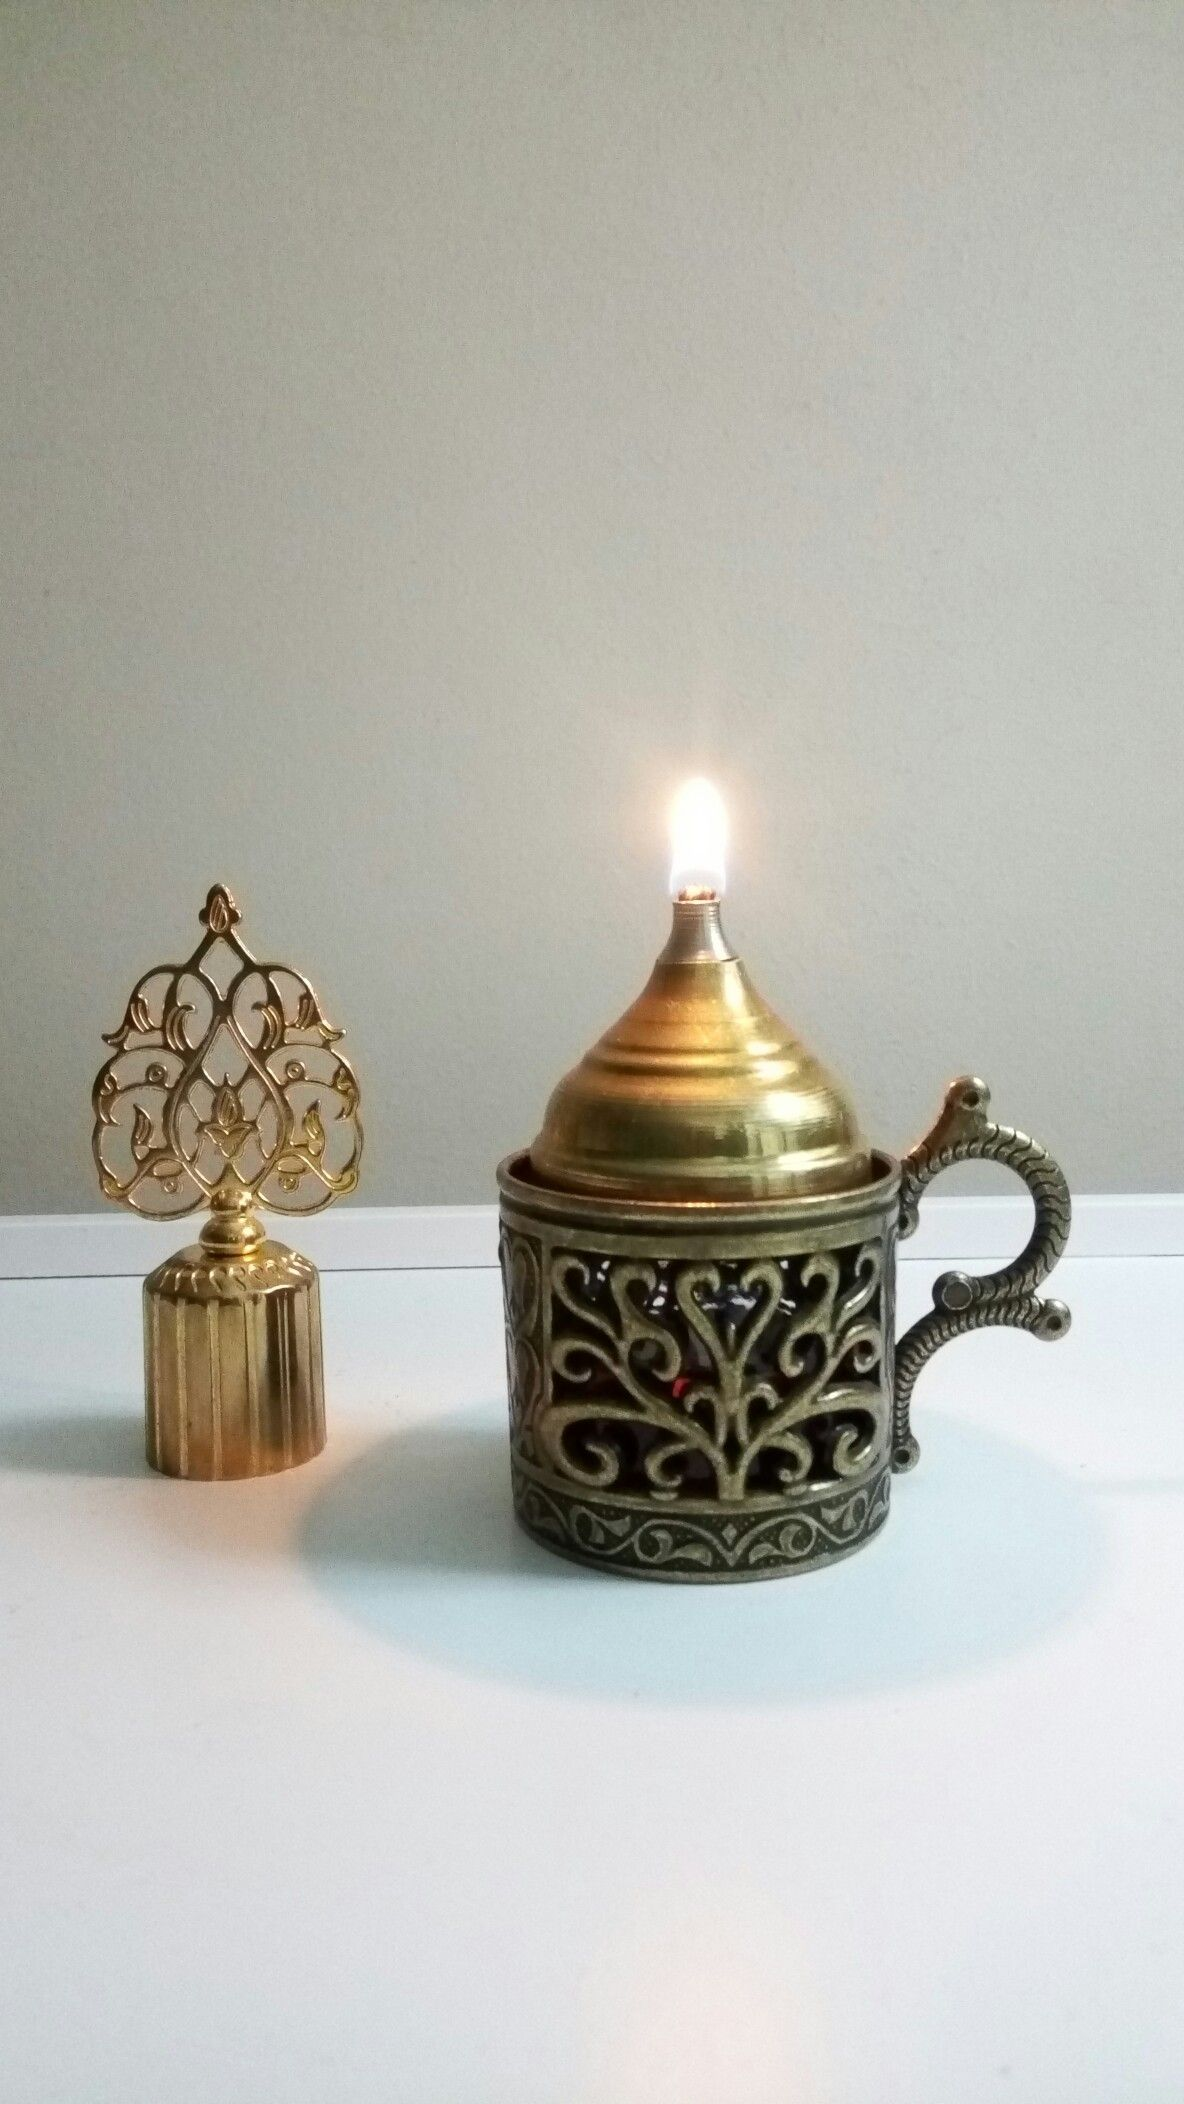 Diy Kerosene Lamp Kerosene Oil Lamp Diy Oil Lamps Pinterest Oil Lamps